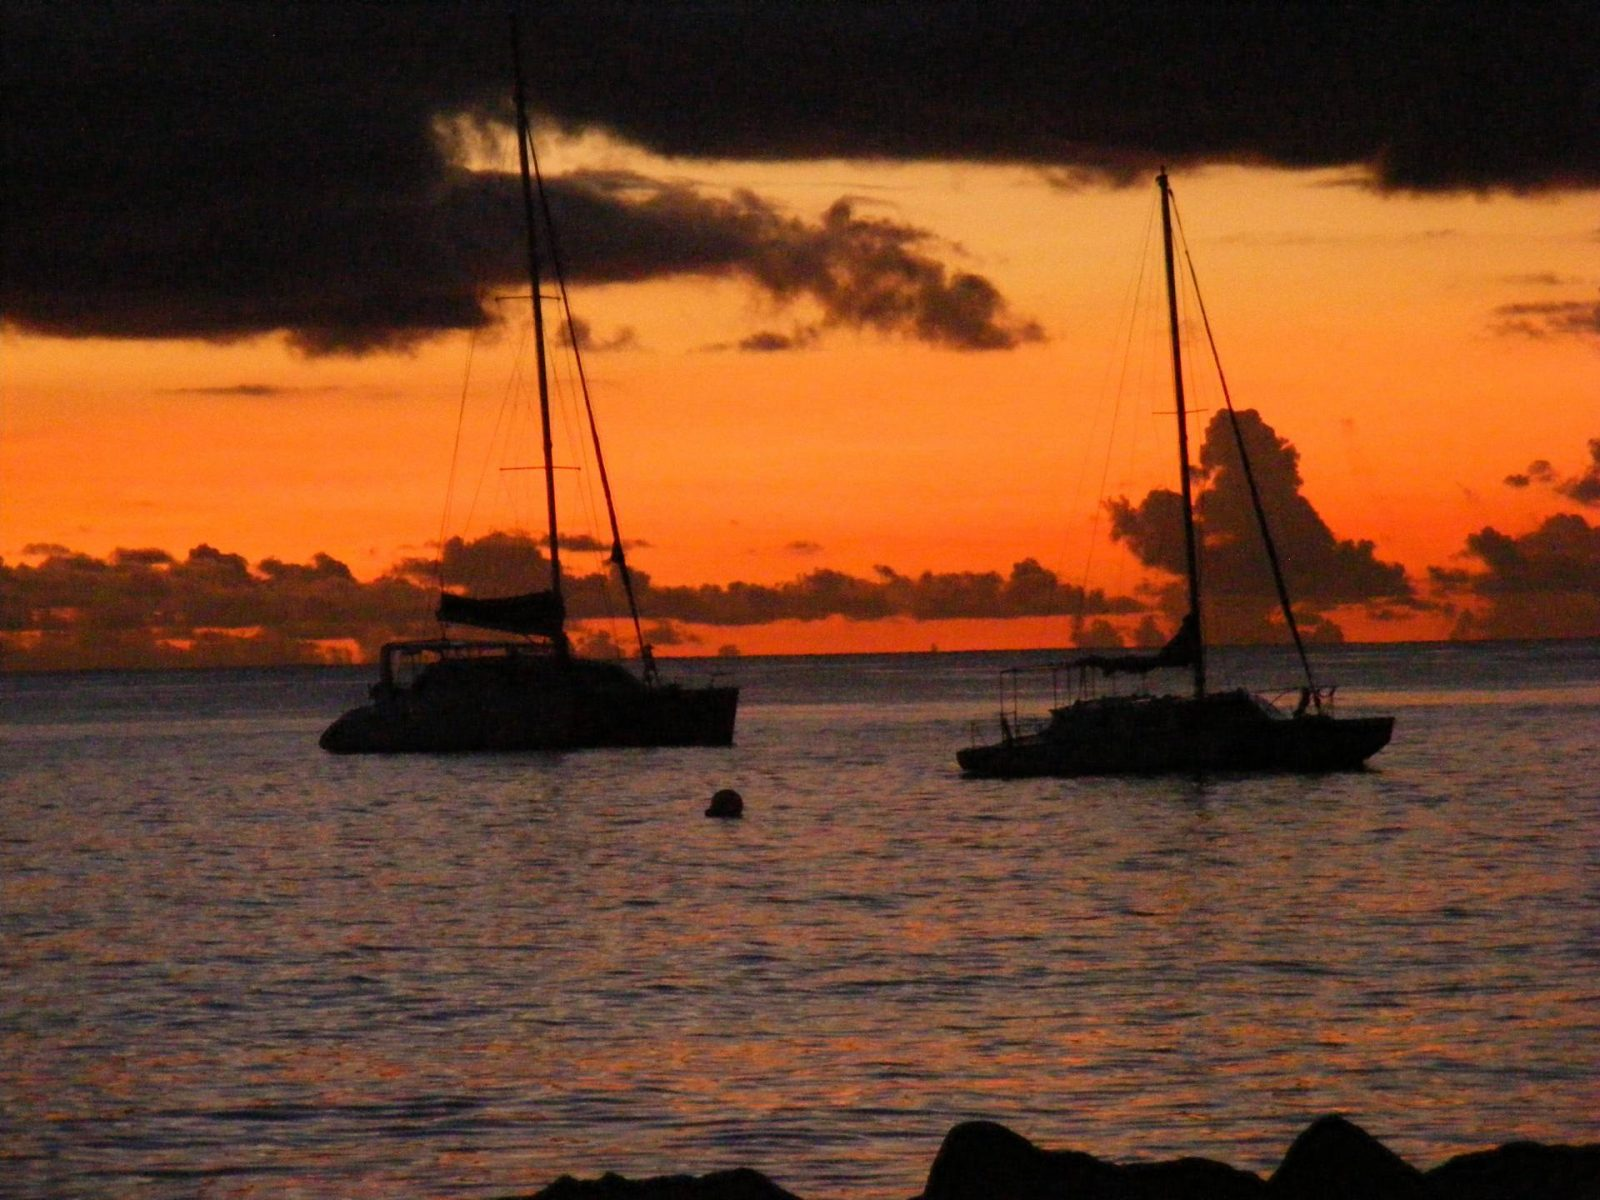 sunset at Surfside, Holetown, Barbados